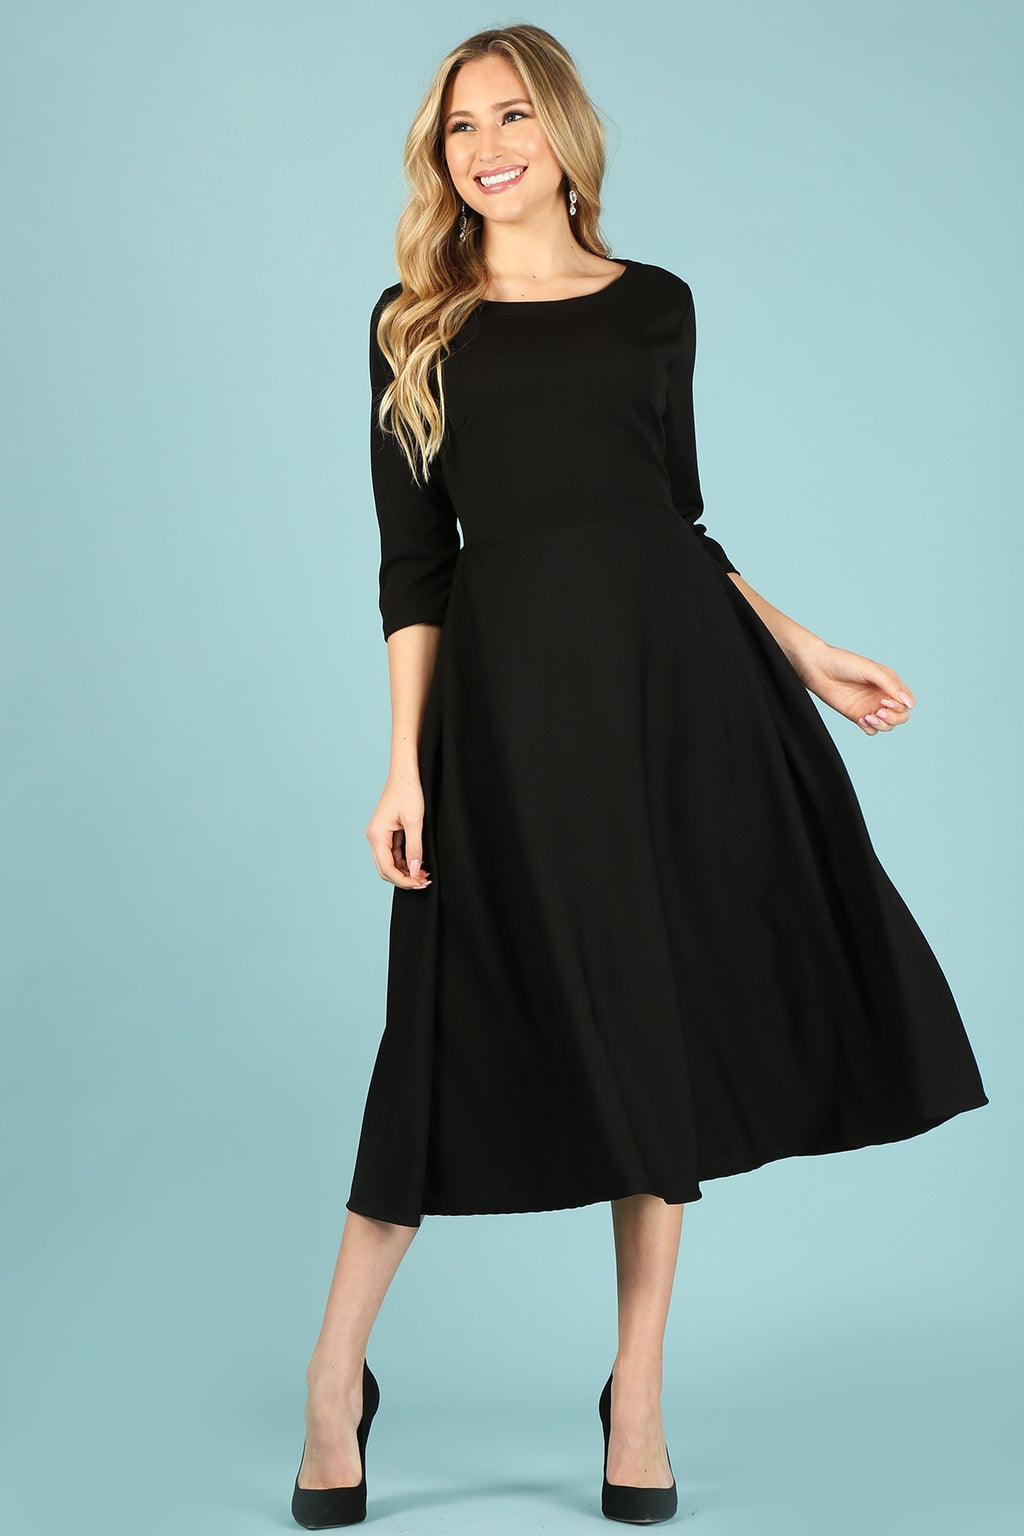 The Adira Dress - Black